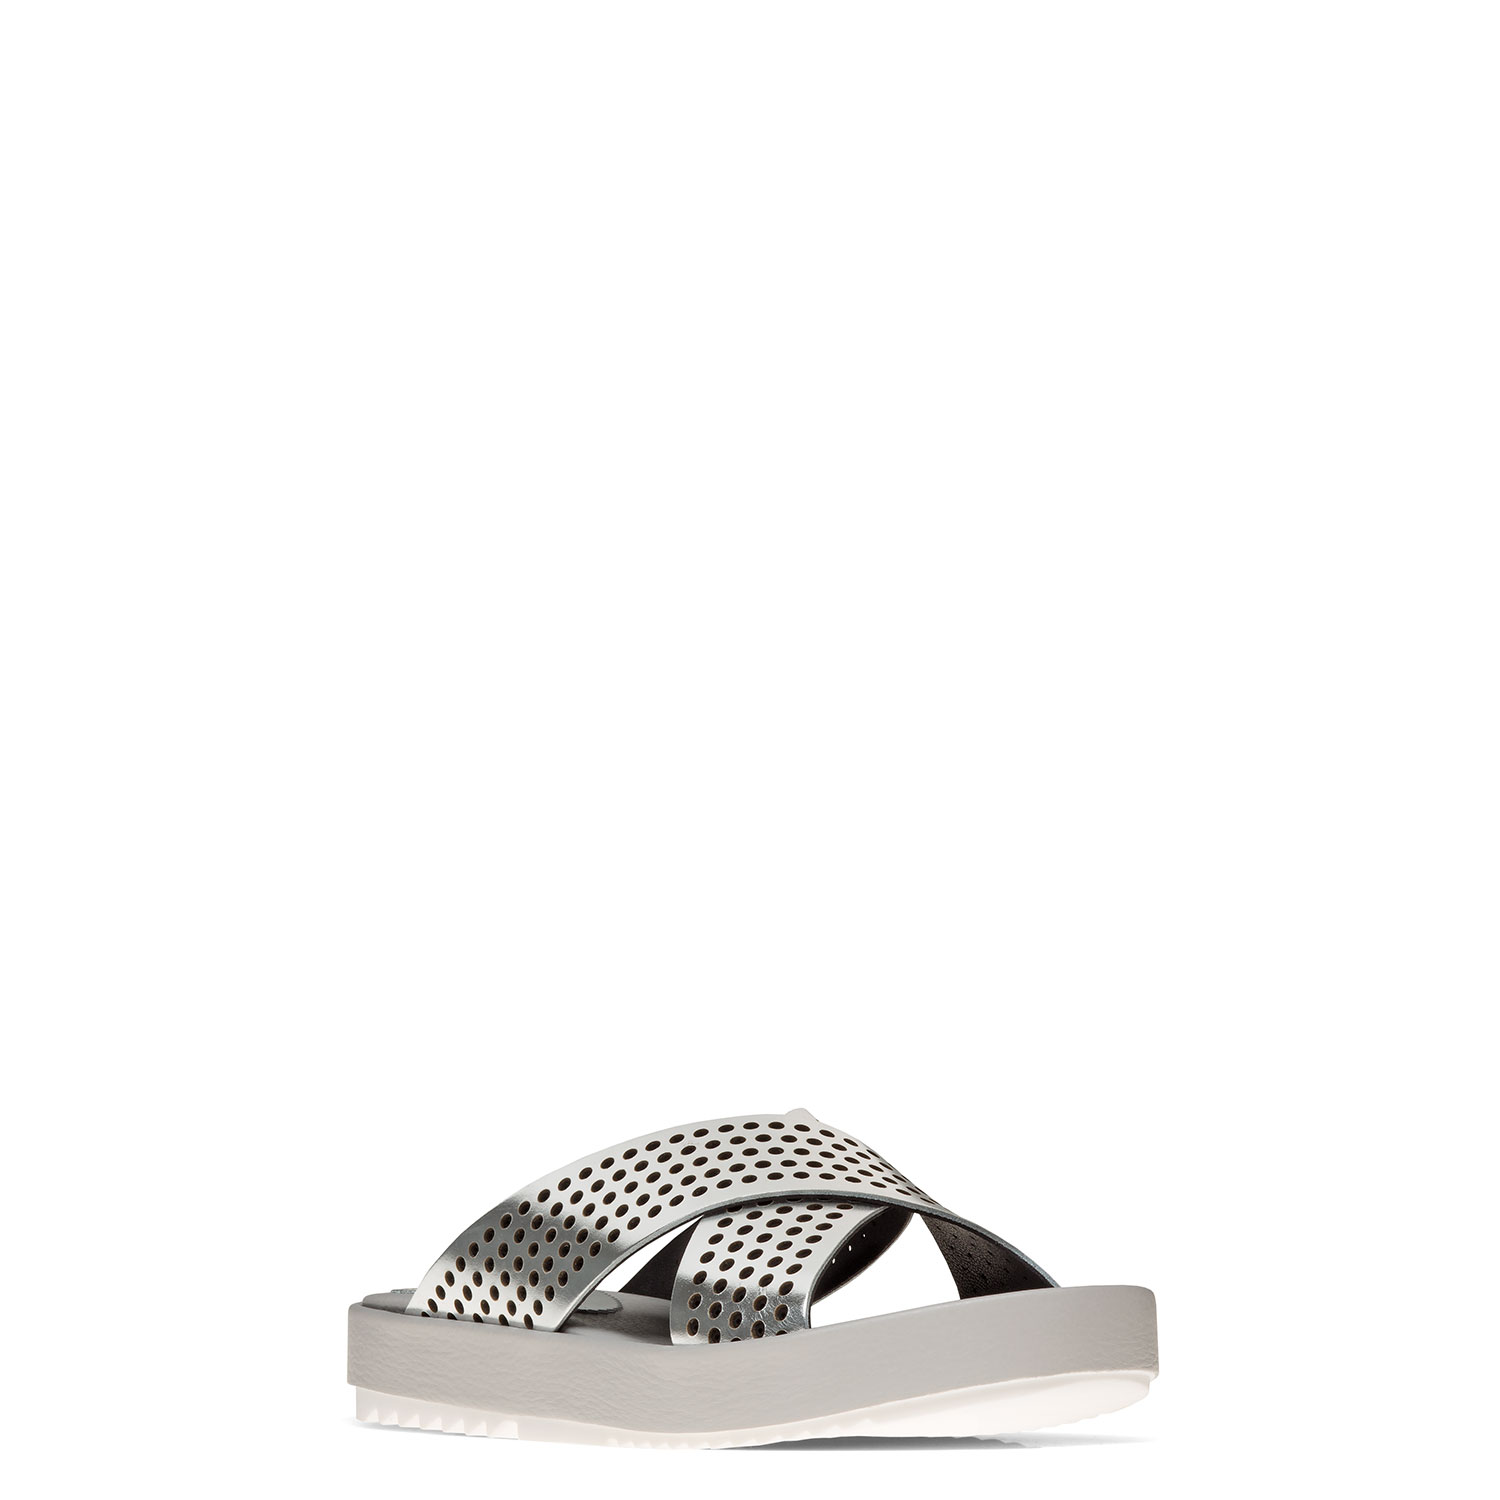 Women's sandals PAZOLINI TO-X2764-8